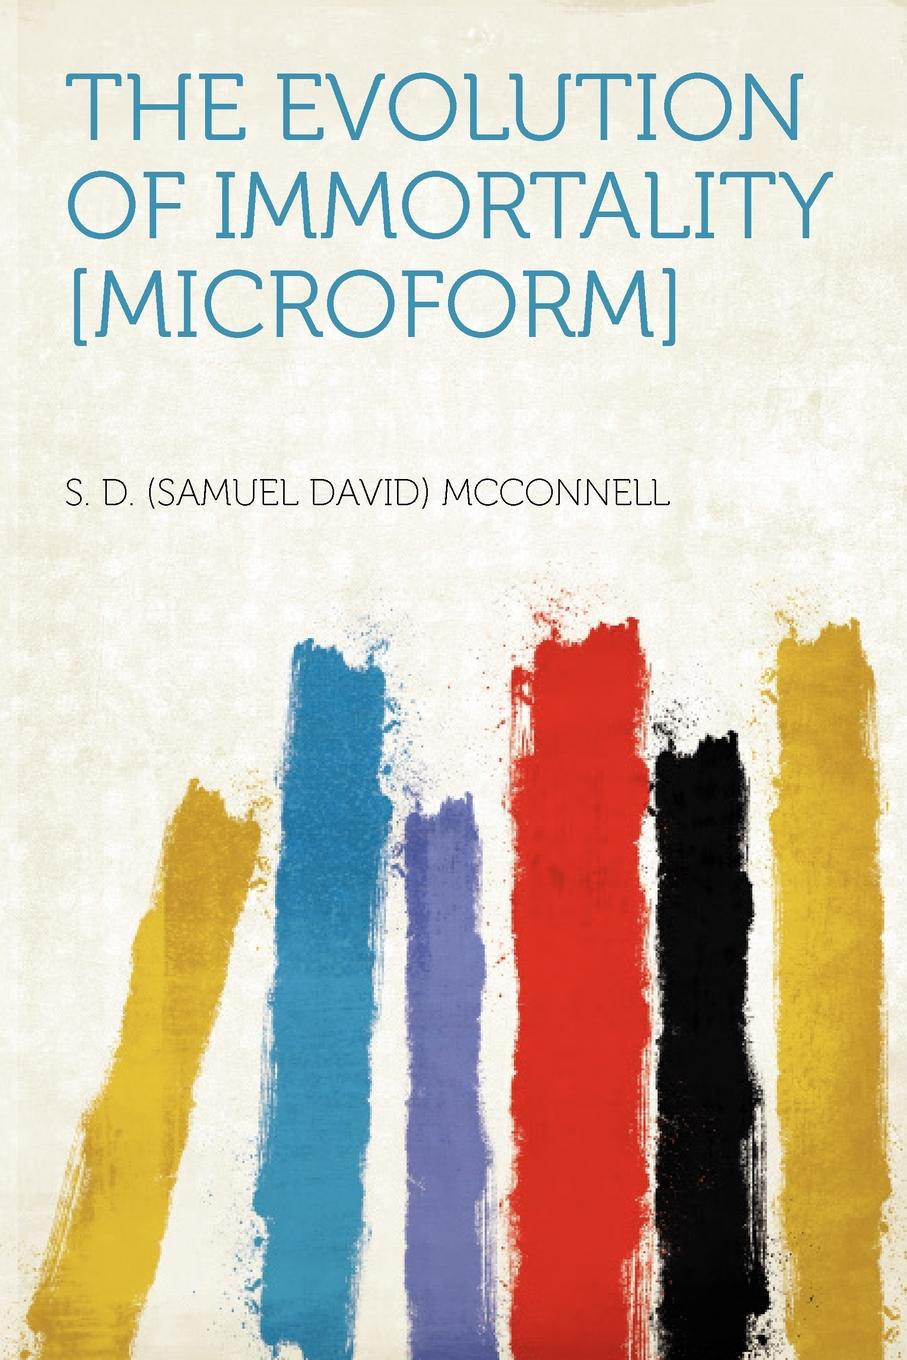 The Evolution of Immortality .microform.. S. D. (Samuel David) McConnell